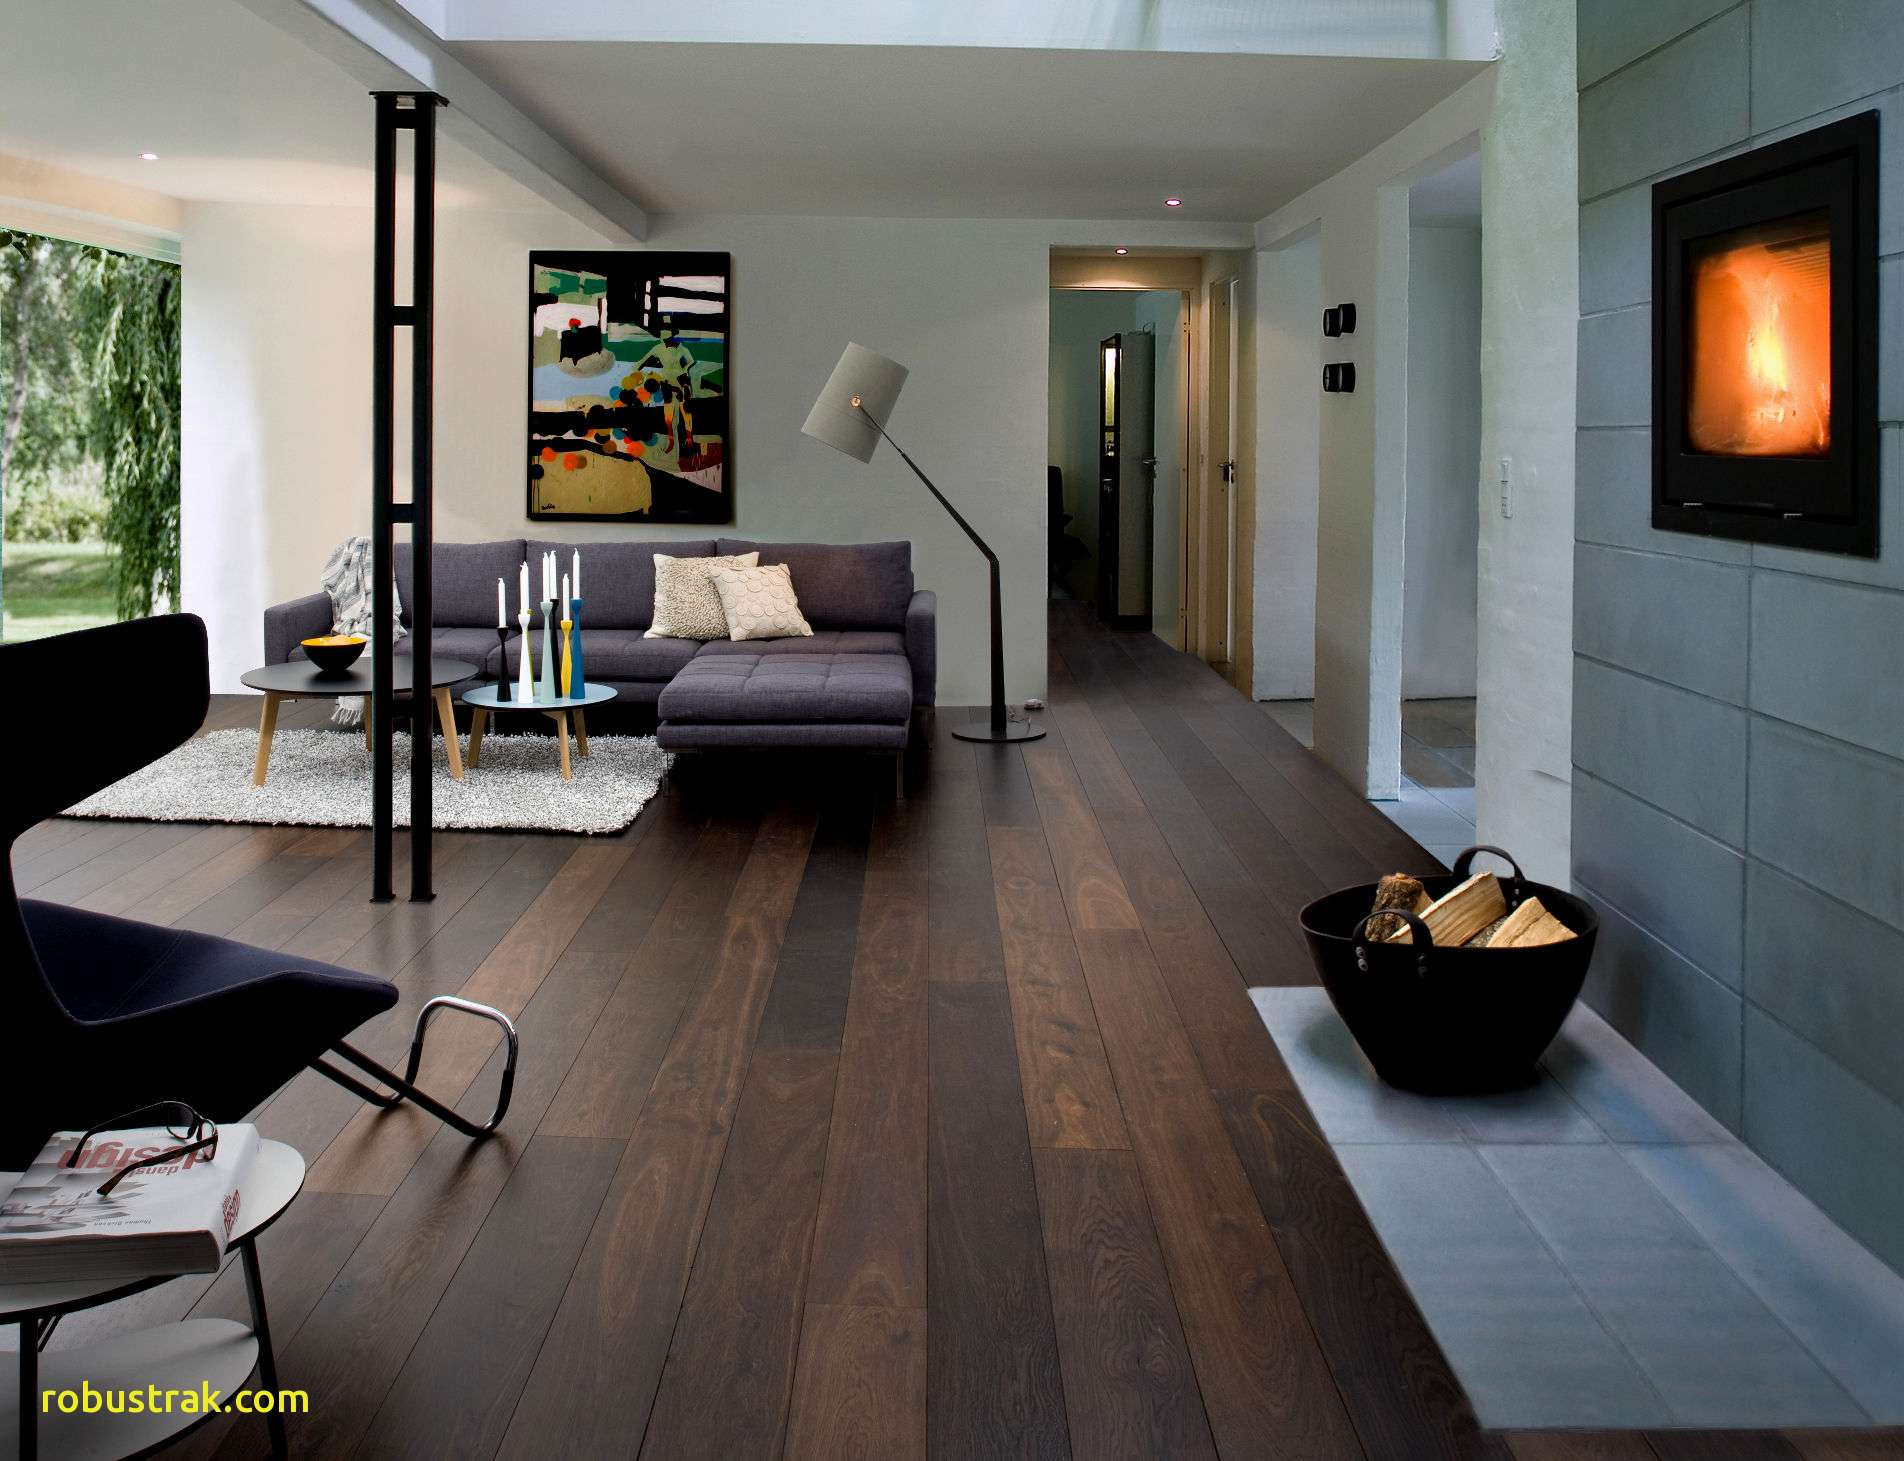 4 Hardwood Flooring Of Luxury Rooms with Dark Hardwood Floors Home Design Ideas within Full Size Of Living Room Living Room Image Result for Dining Dark Wood Floors Maison